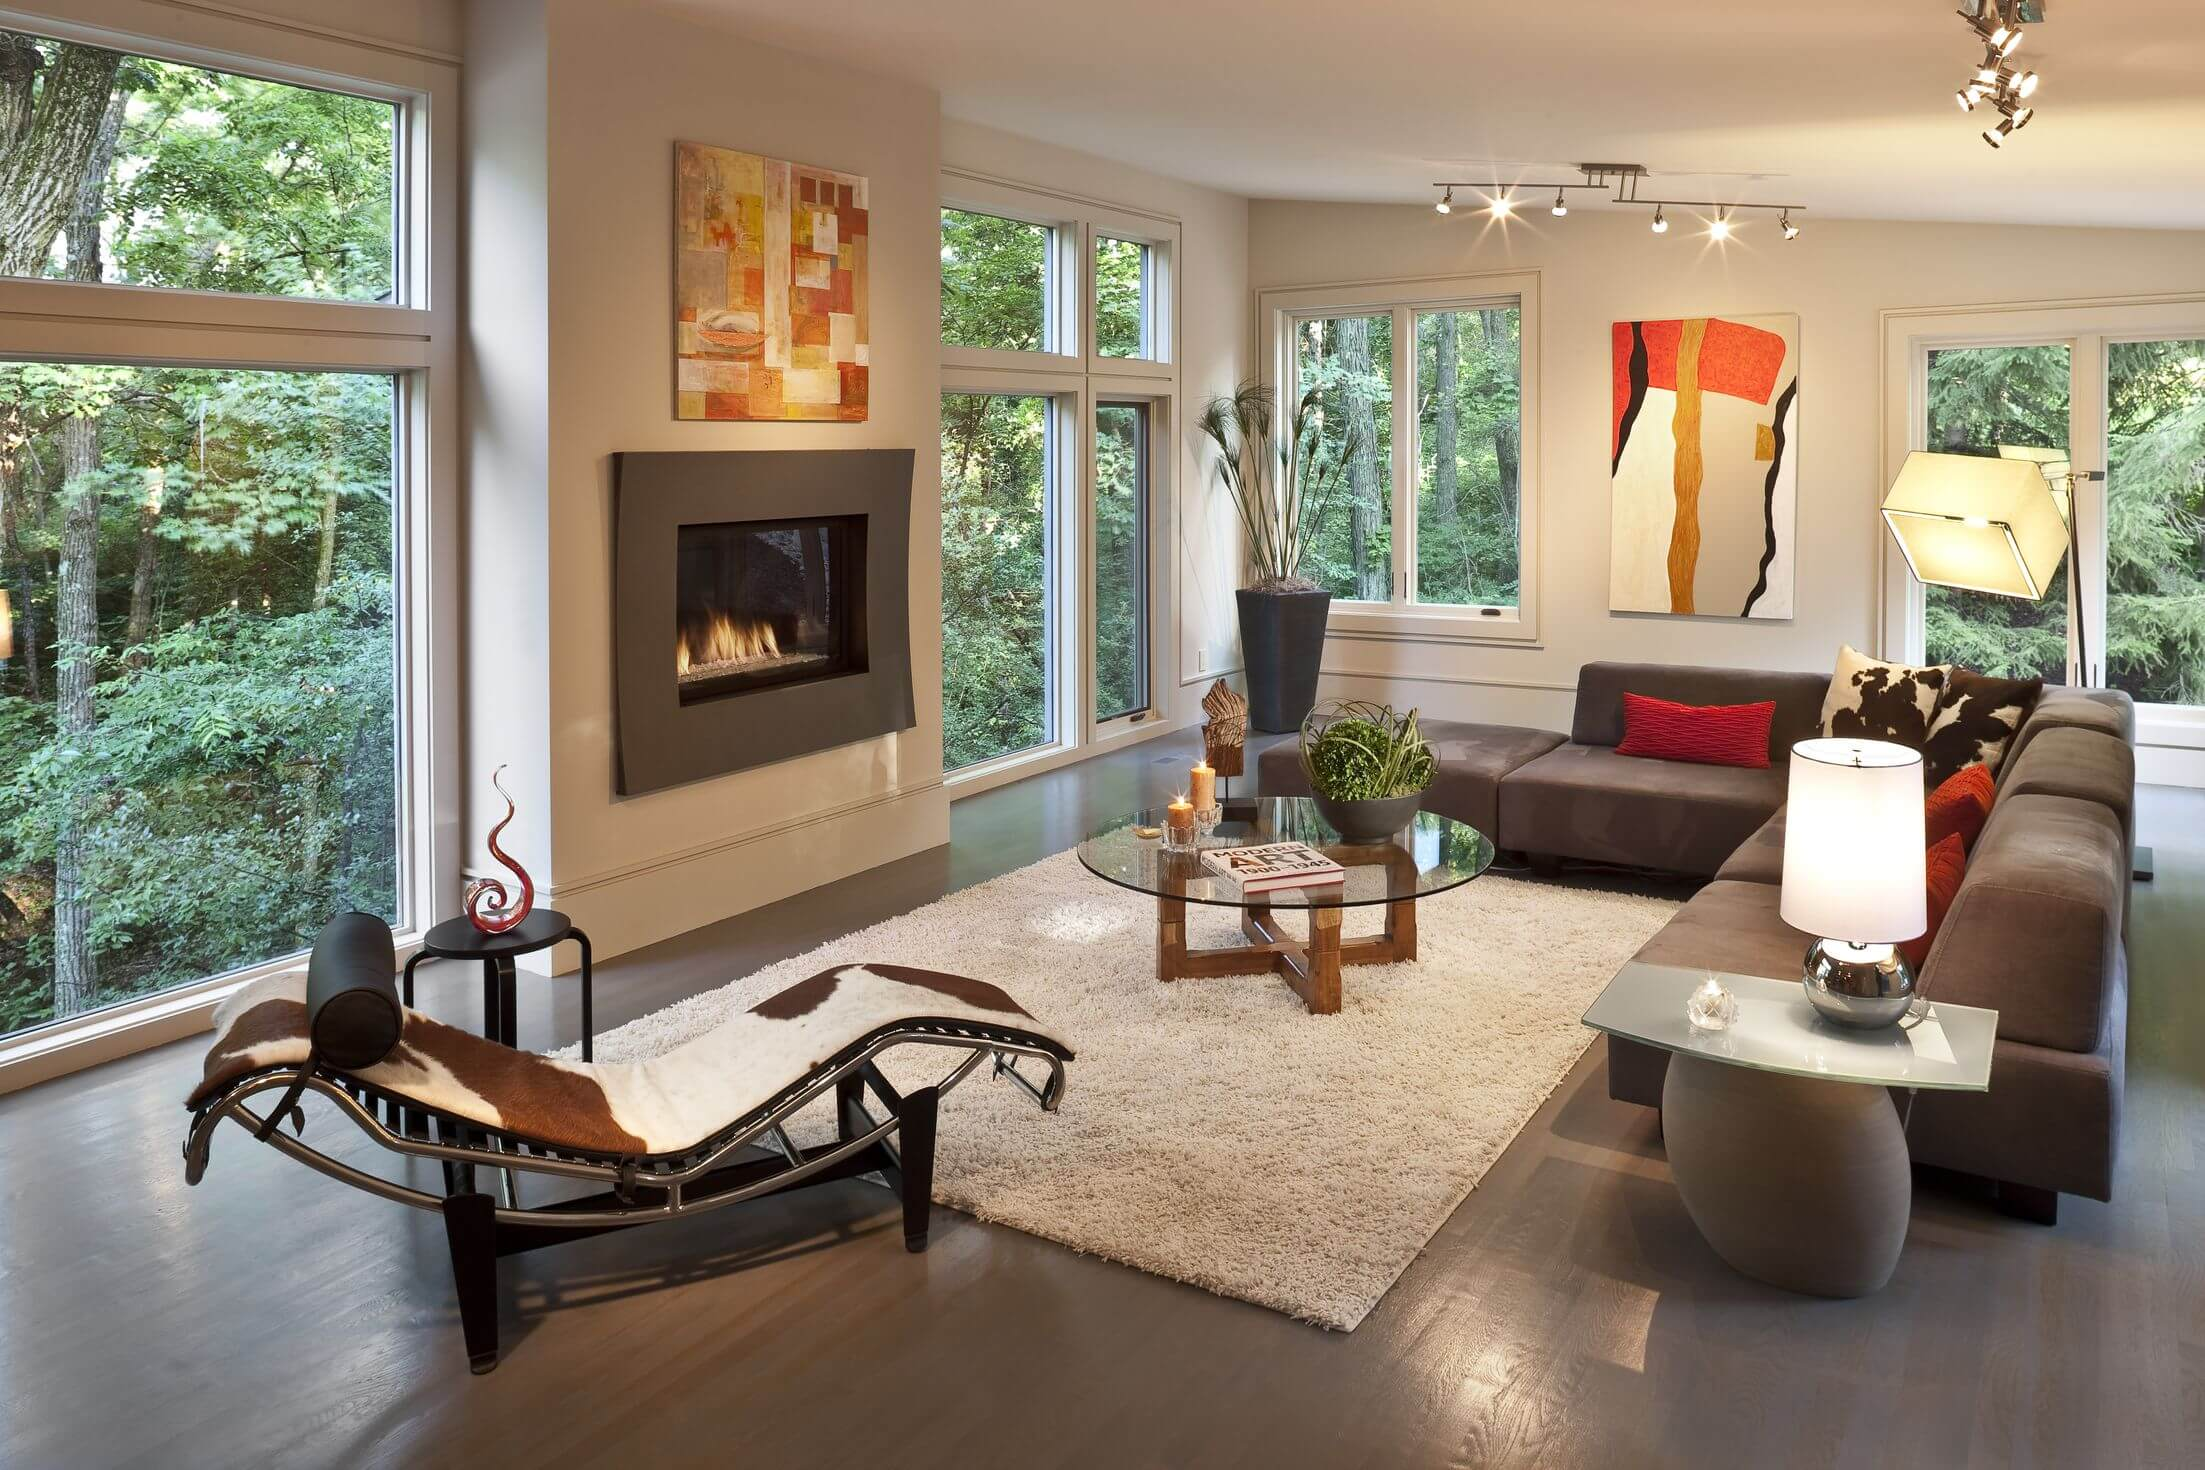 Sloped white ceiling over dark wood flooring in this living room holding modern armless brown sofa with red and cow-pattern pillows. White shag rug at center olds wood and glass coffee table, while cowhide chaise lounge sits on left.